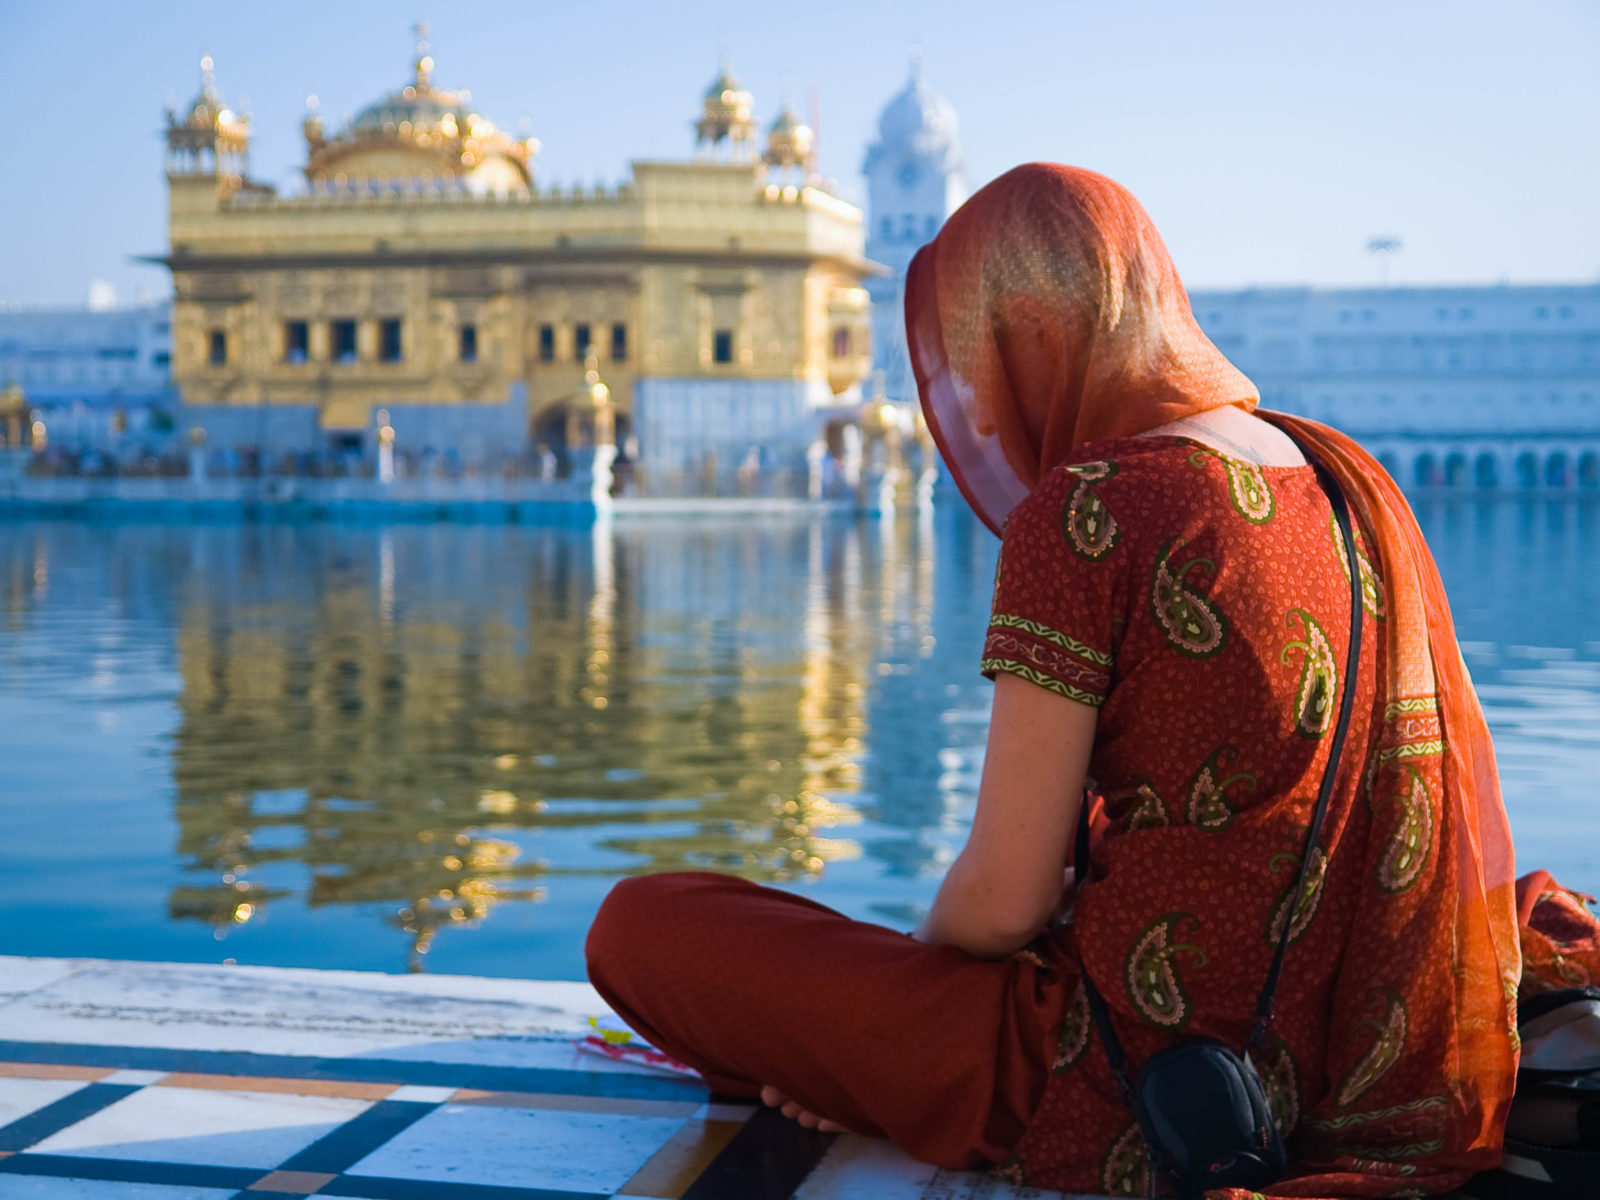 Finding Myself at Harmandir Sahib